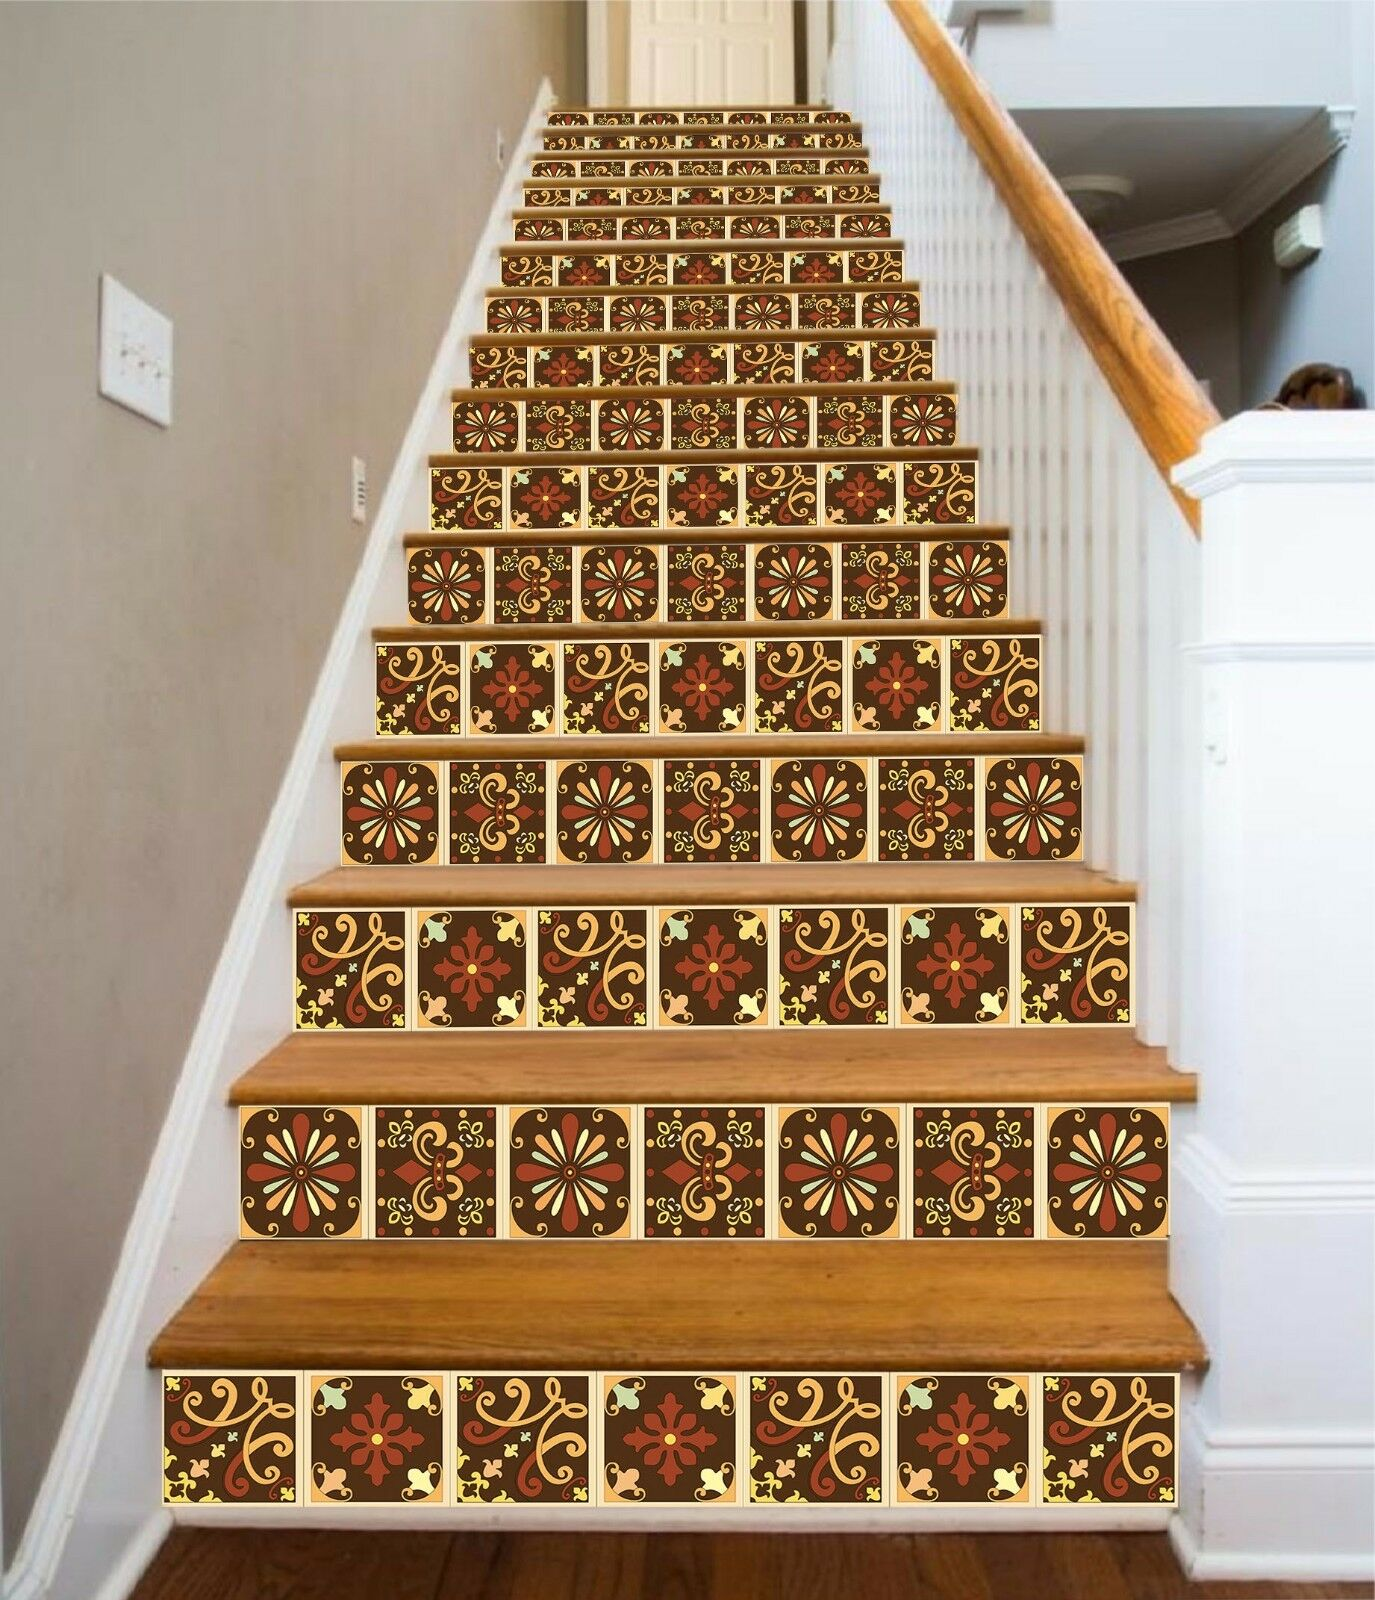 3D Four Pattern 301 Stair Risers Decoration Photo Mural Vinyl Decal Wallpaper UK